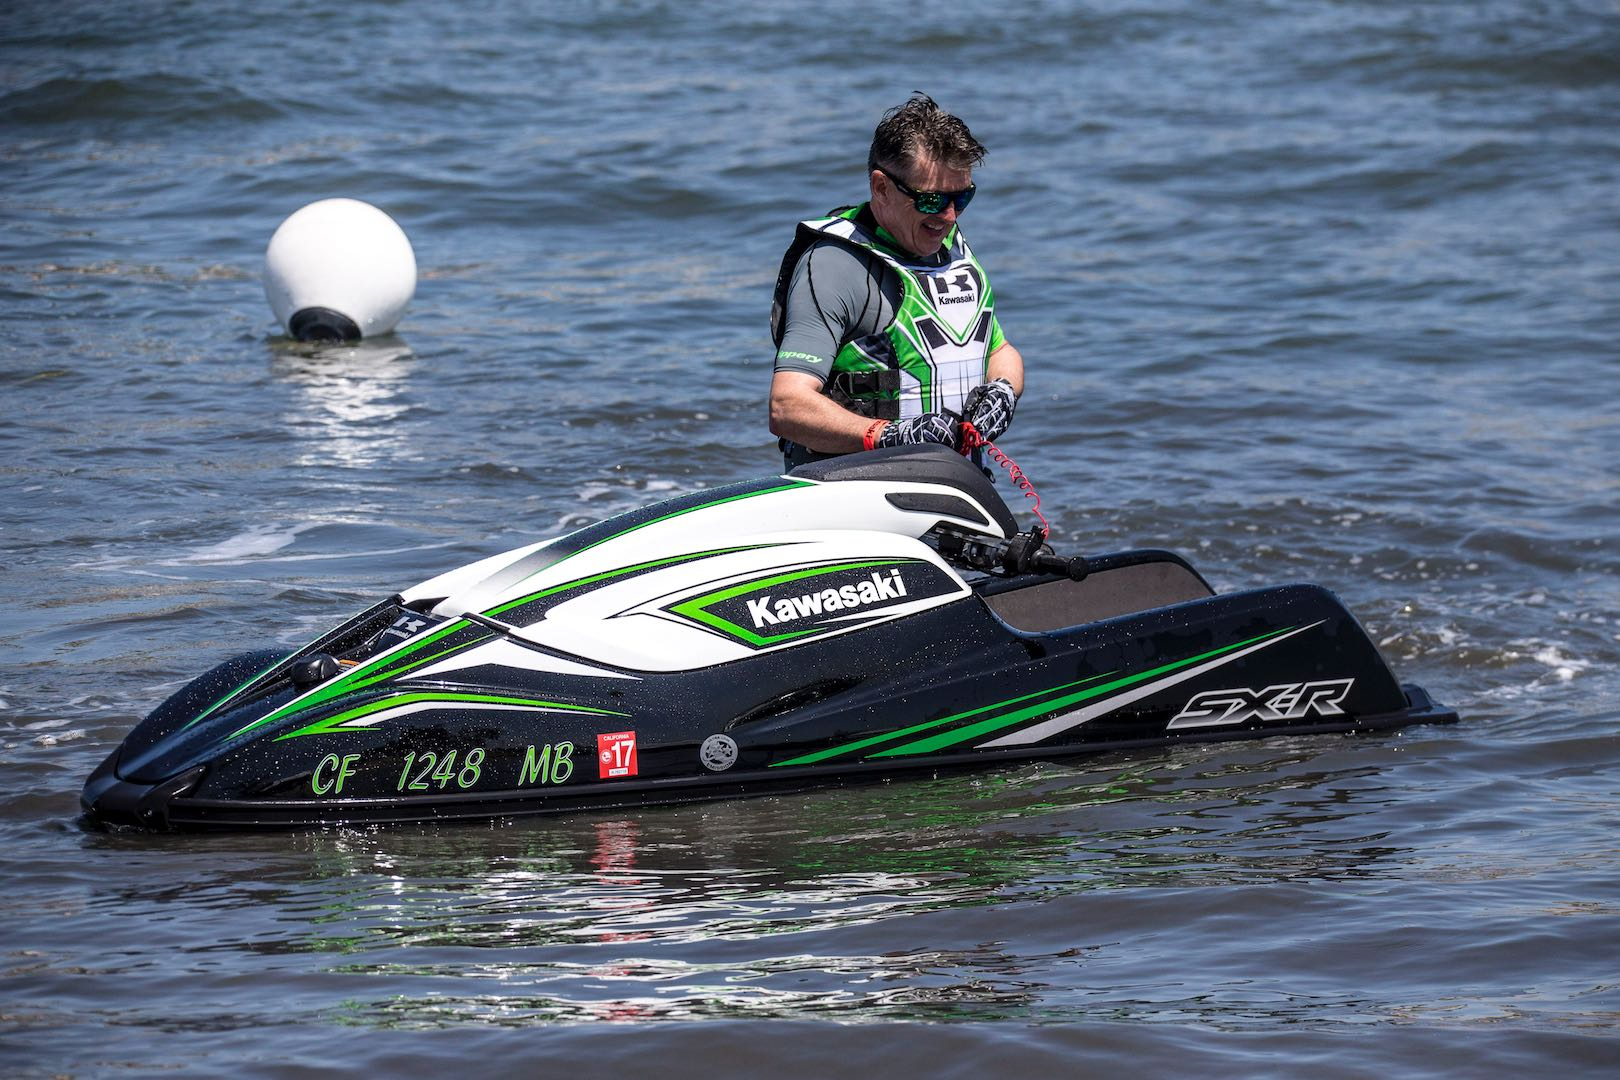 Kawasaki SX-R Jet Ski First Ride Review | 14 Fast Facts (+ Video)